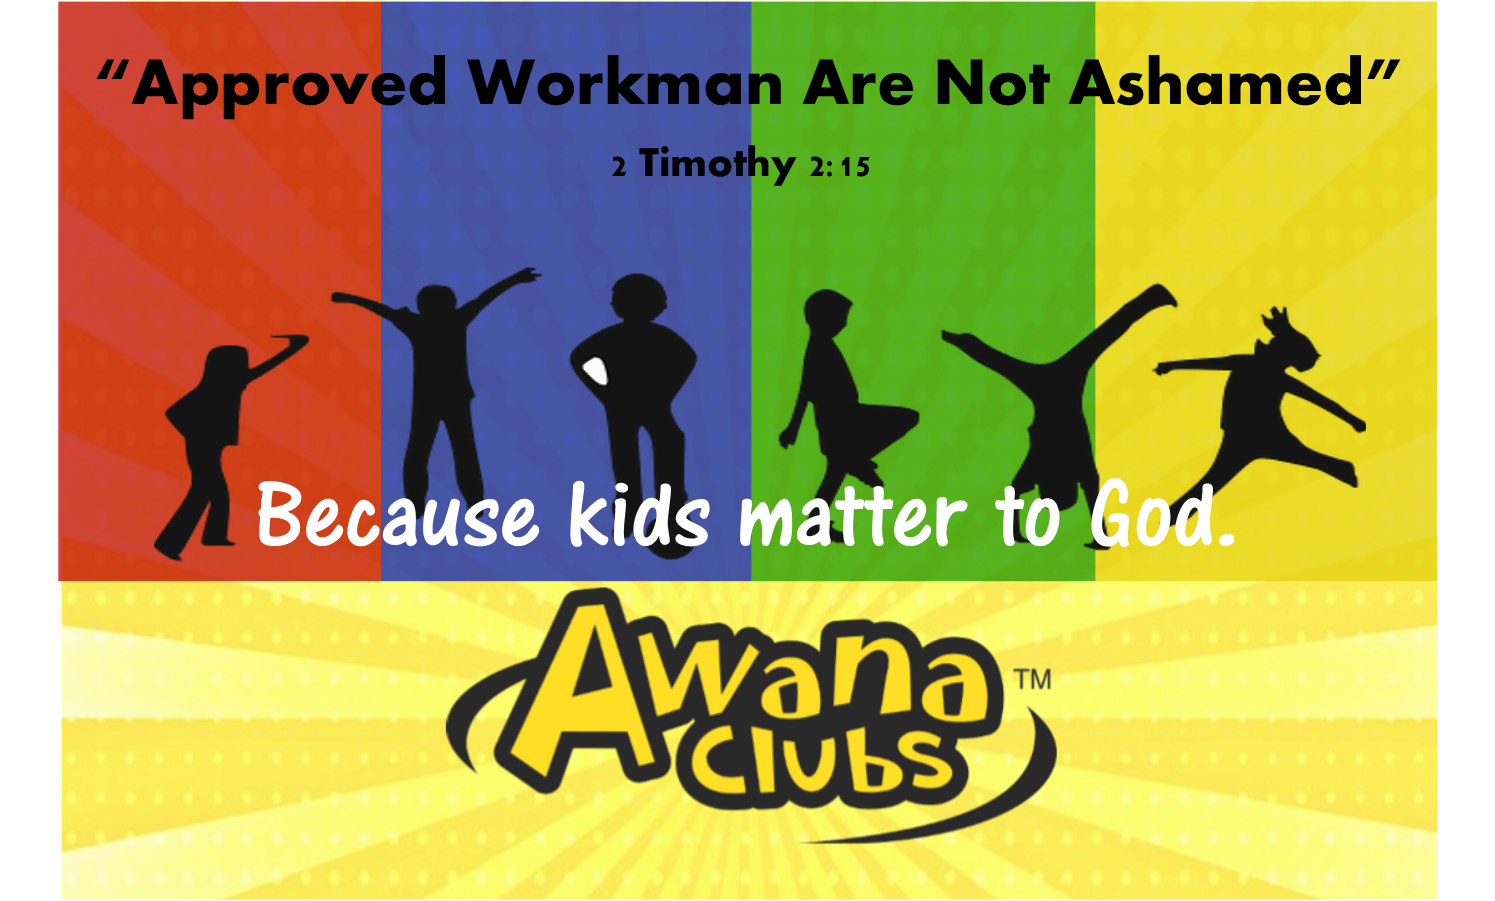 AWANA Kids Club in Pittsburgh at Upper Saint Clair Allianch.